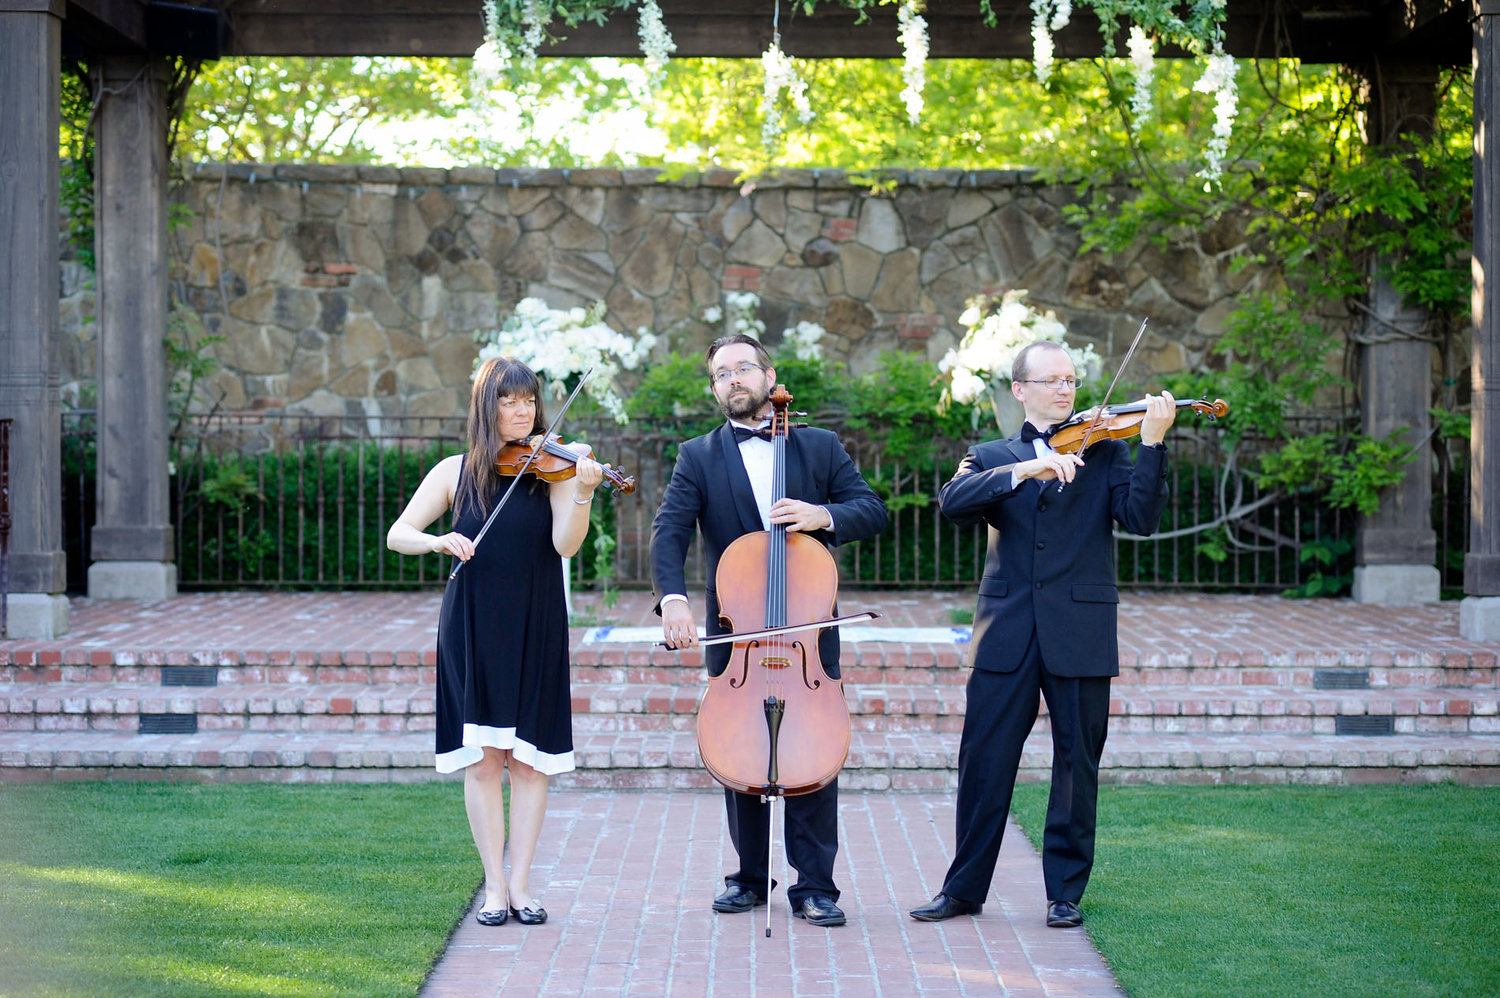 String Quartet Wedding Ceremony Songs Processional March Entrance